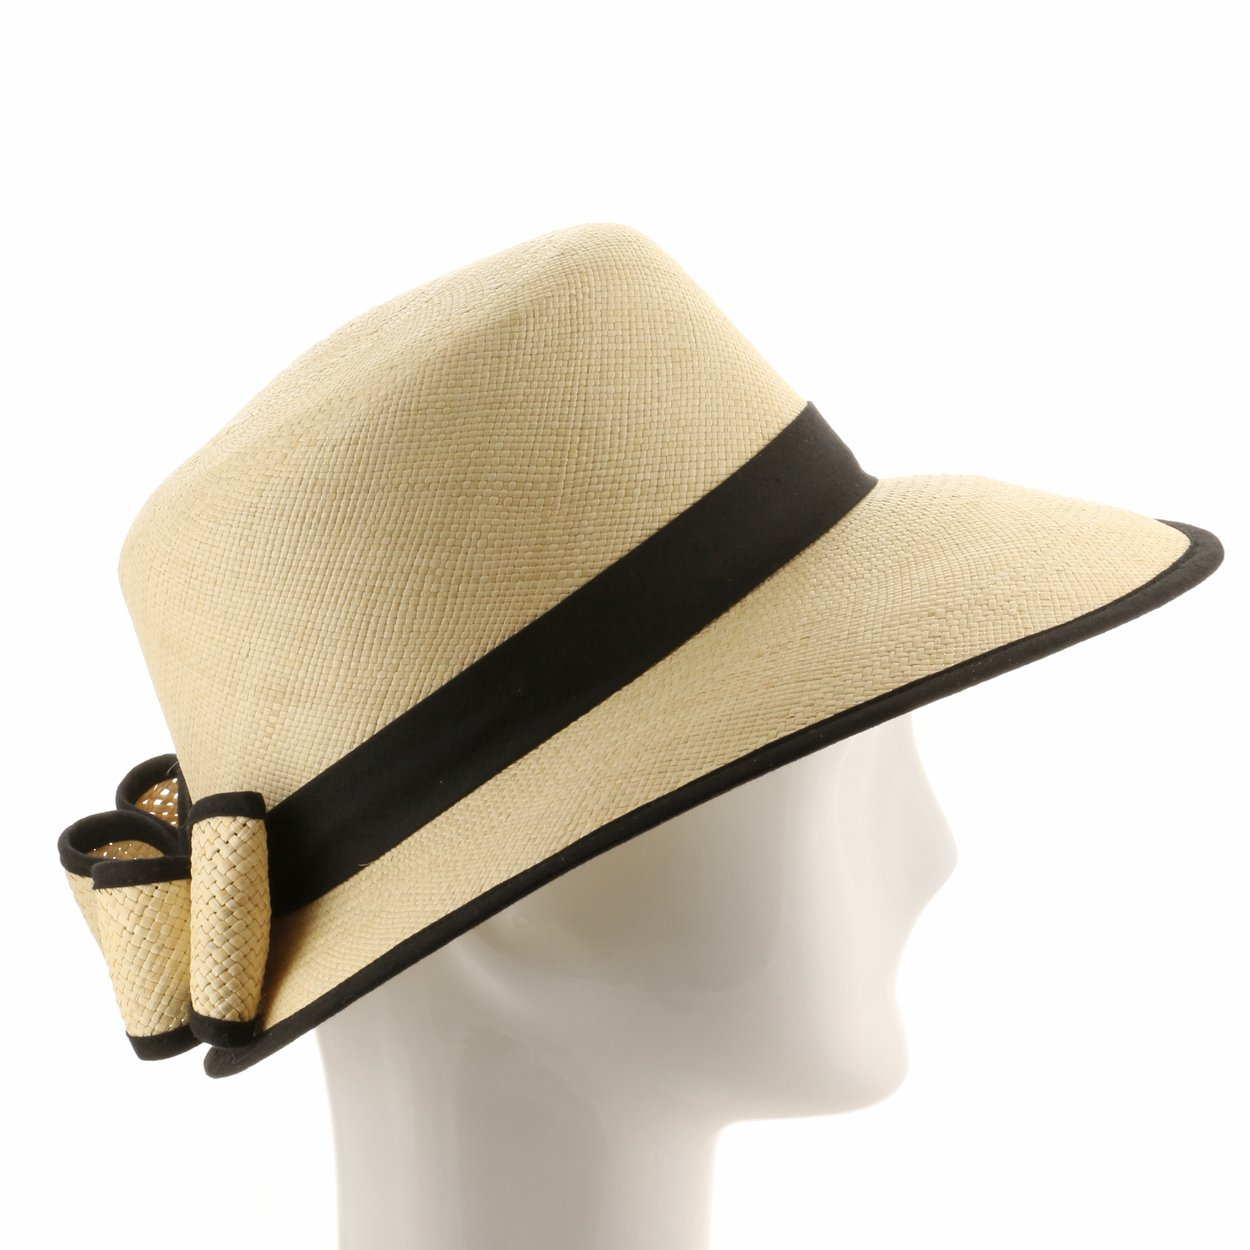 Agent Peggy Carter Costume, Dress, Hats Vivianne Scoop Handwoven Straw Visor Panama Hat Made In Ecuador $125.99 AT vintagedancer.com